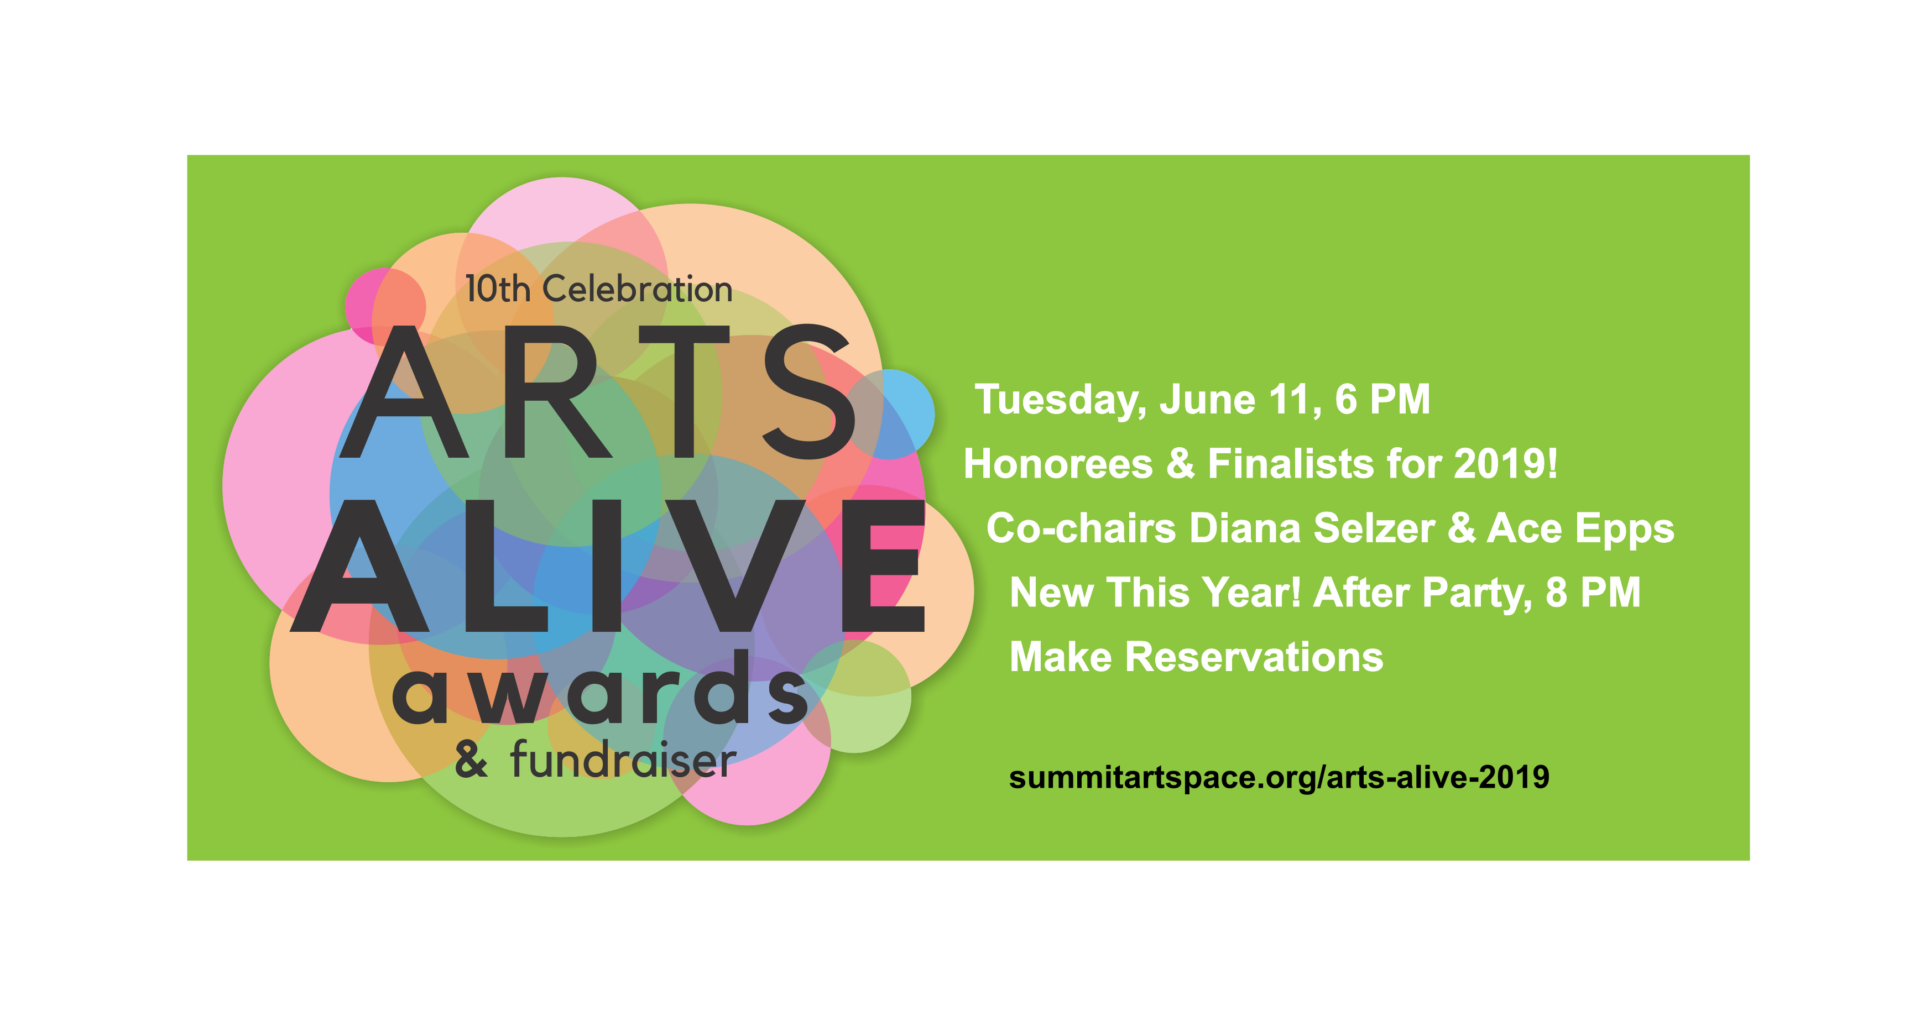 Arts Alive Awards 2019